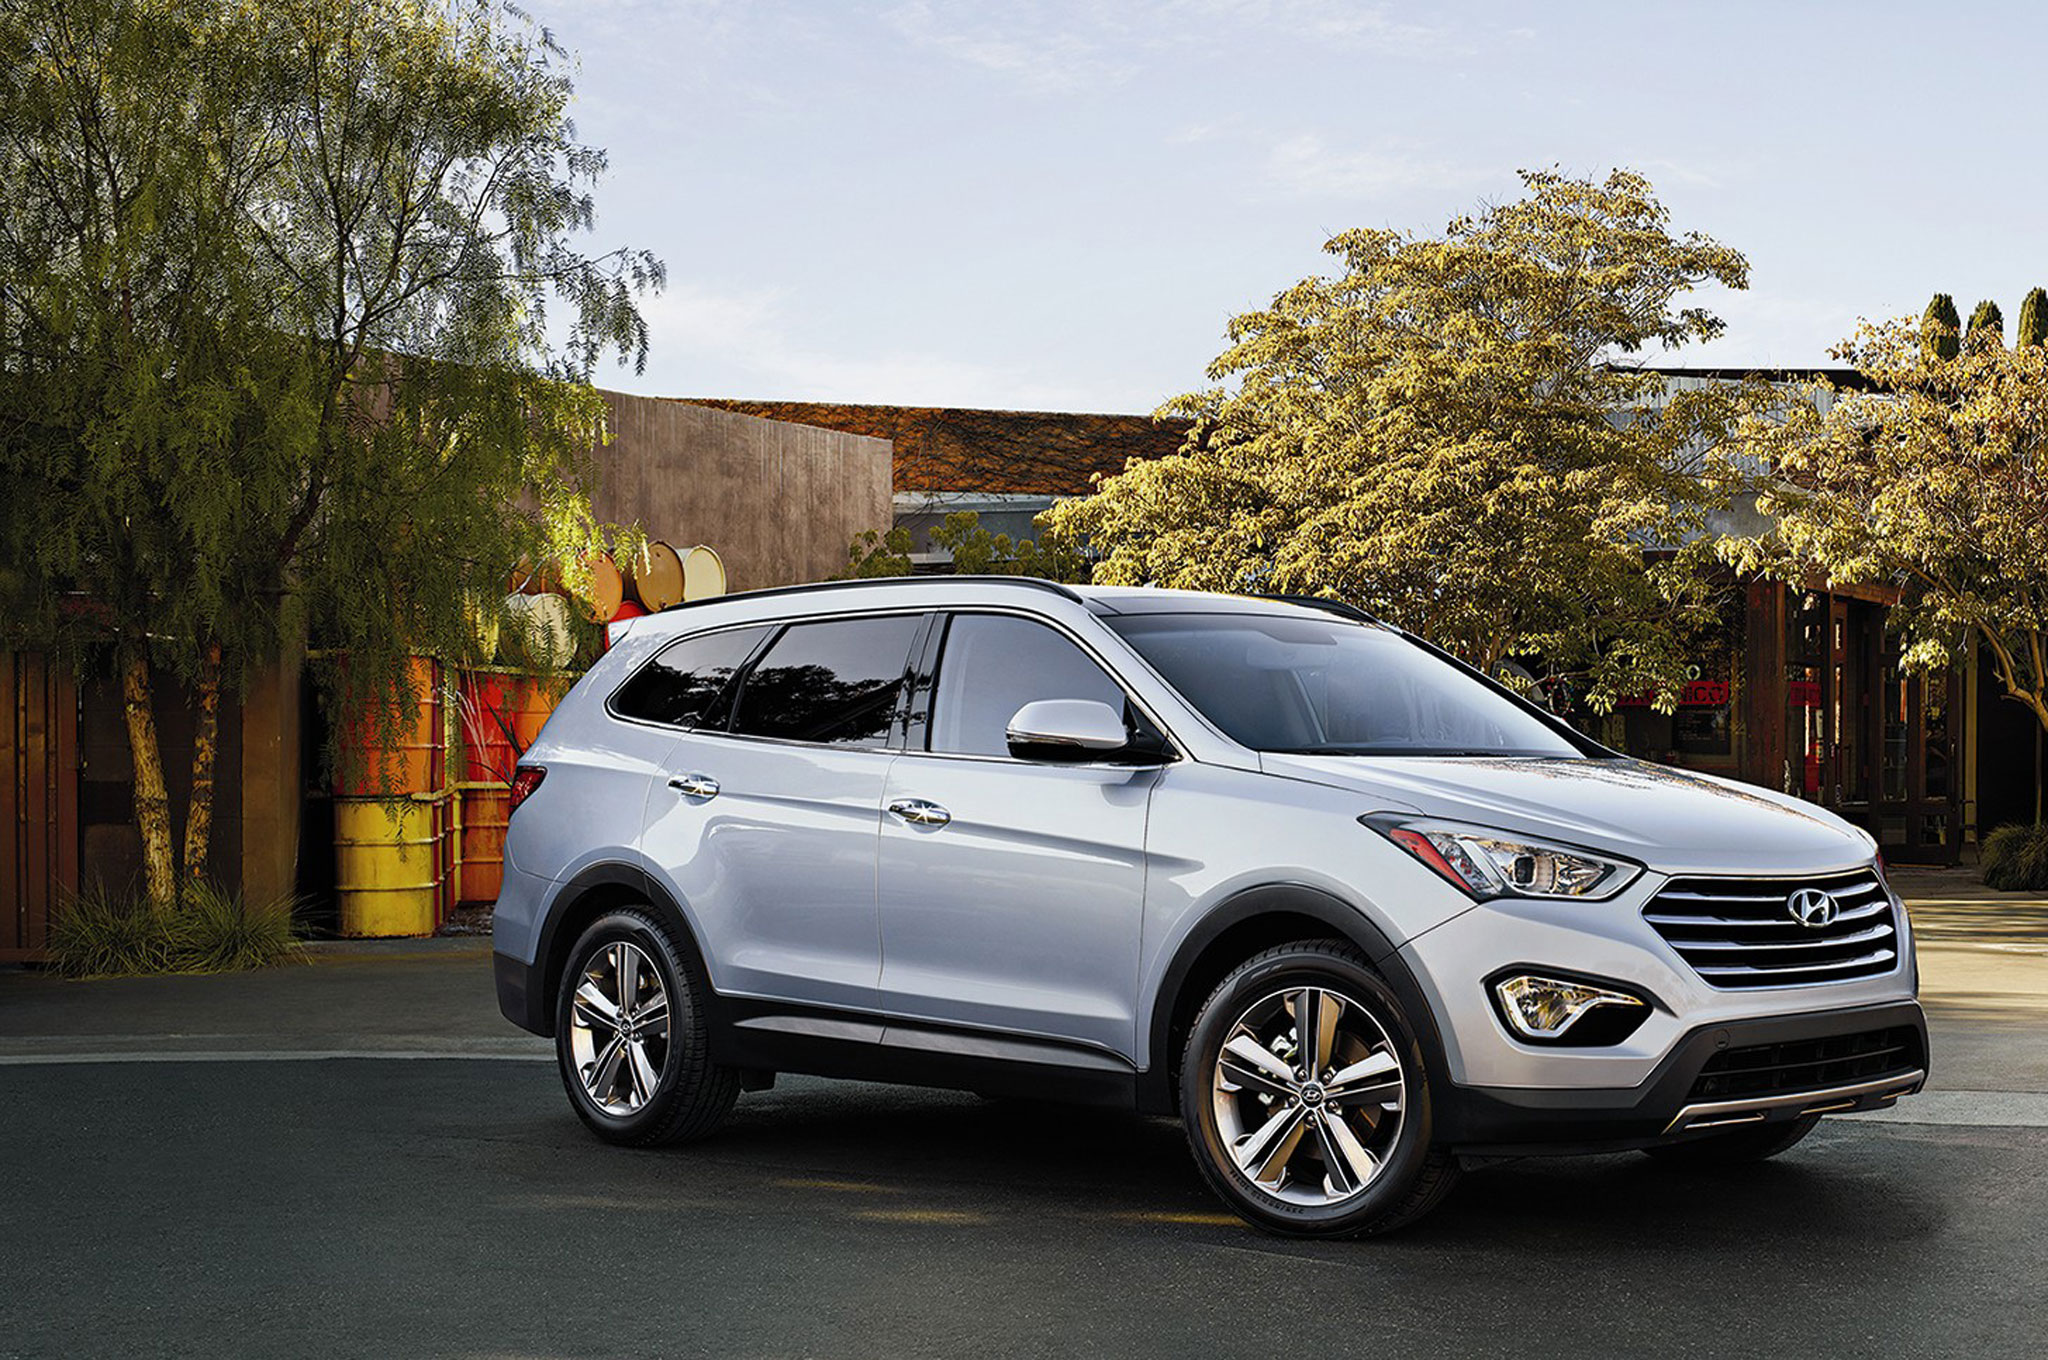 Finding Luxury on a Budget: 28 SUVs and Crossovers You Can Get for ...